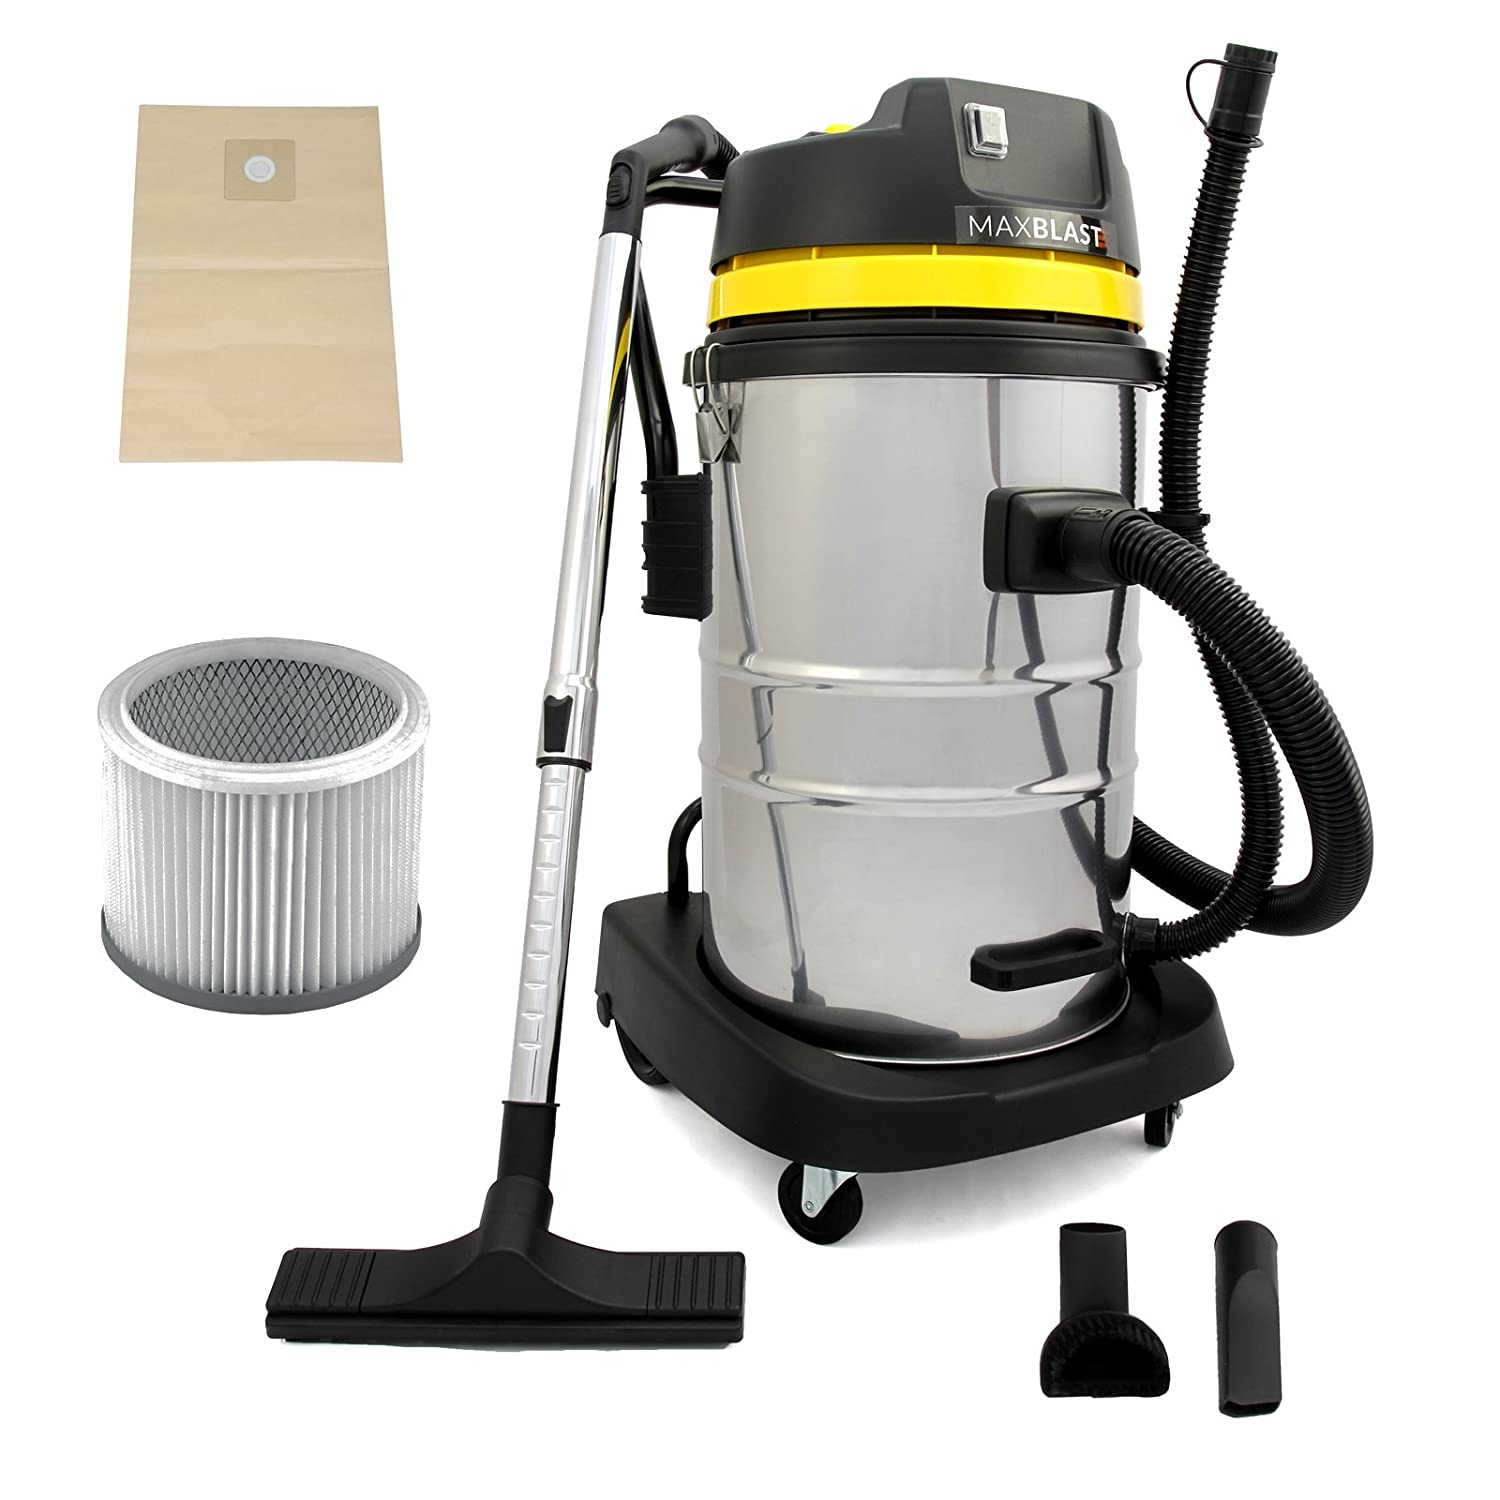 MAXBLAST Industrial Wet U0026 Dry Vacuum Cleaner U0026 Attachments, Powerful 1400W,  50 Litre, Stainess Steel: Amazon.co.uk: DIY U0026 Tools